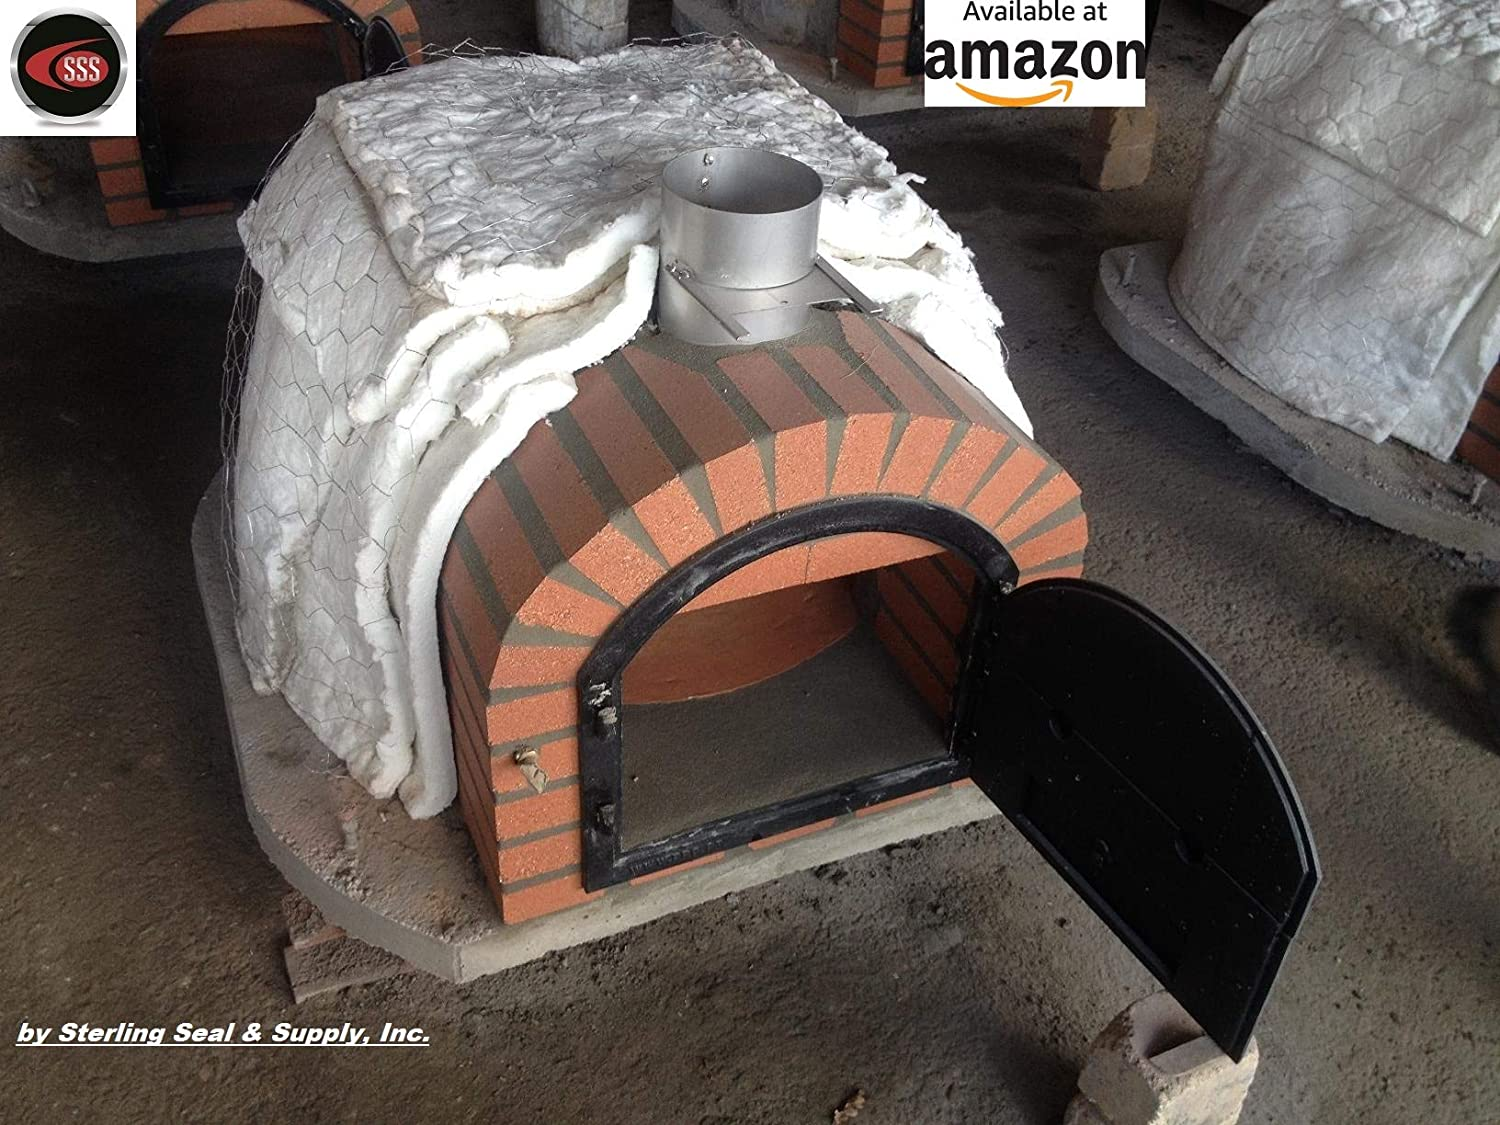 10 Pack Pizza Ovens Fireplaces /& More - Kilns 6x12x1 Ceramic Fiber Blanket Insulation 6# 2300F for Wood Stoves Forges